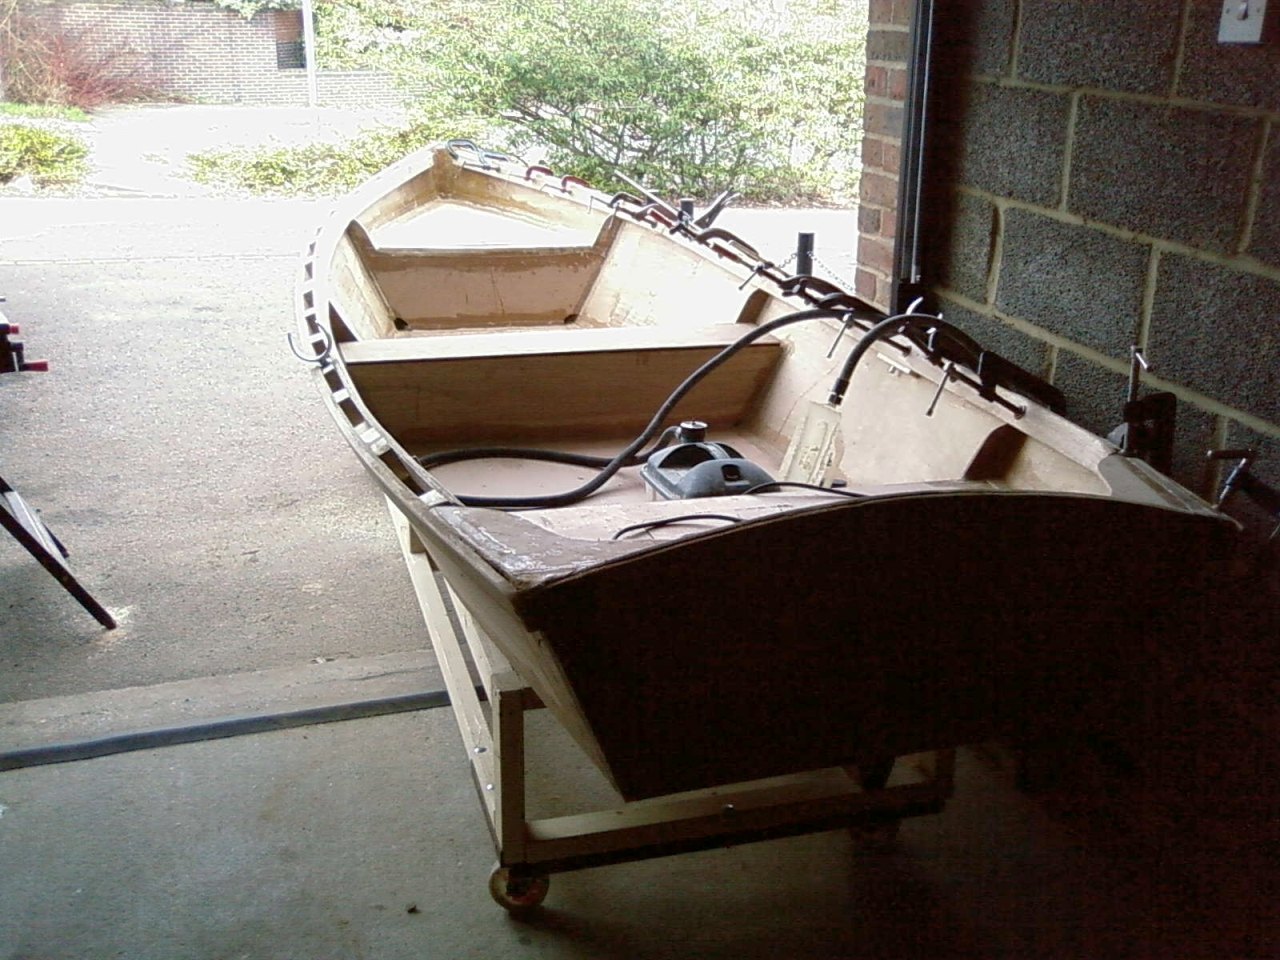 Boat Skiff Plans Plywood Plans PDF Download – DIY Wooden Boat Plans ...